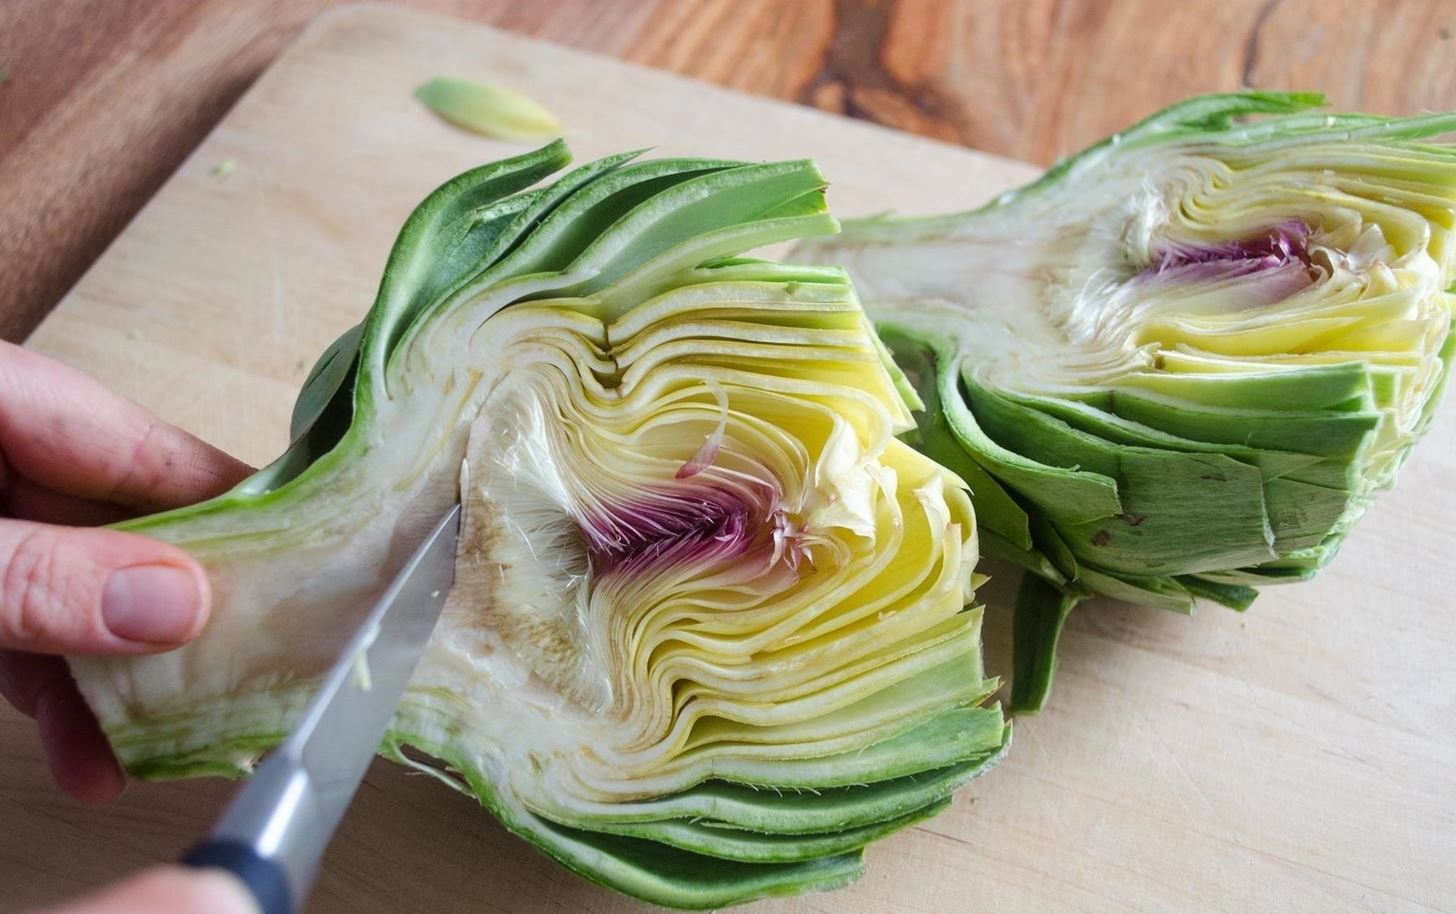 The Absolute Best Way to Prepare & Cook Artichokes